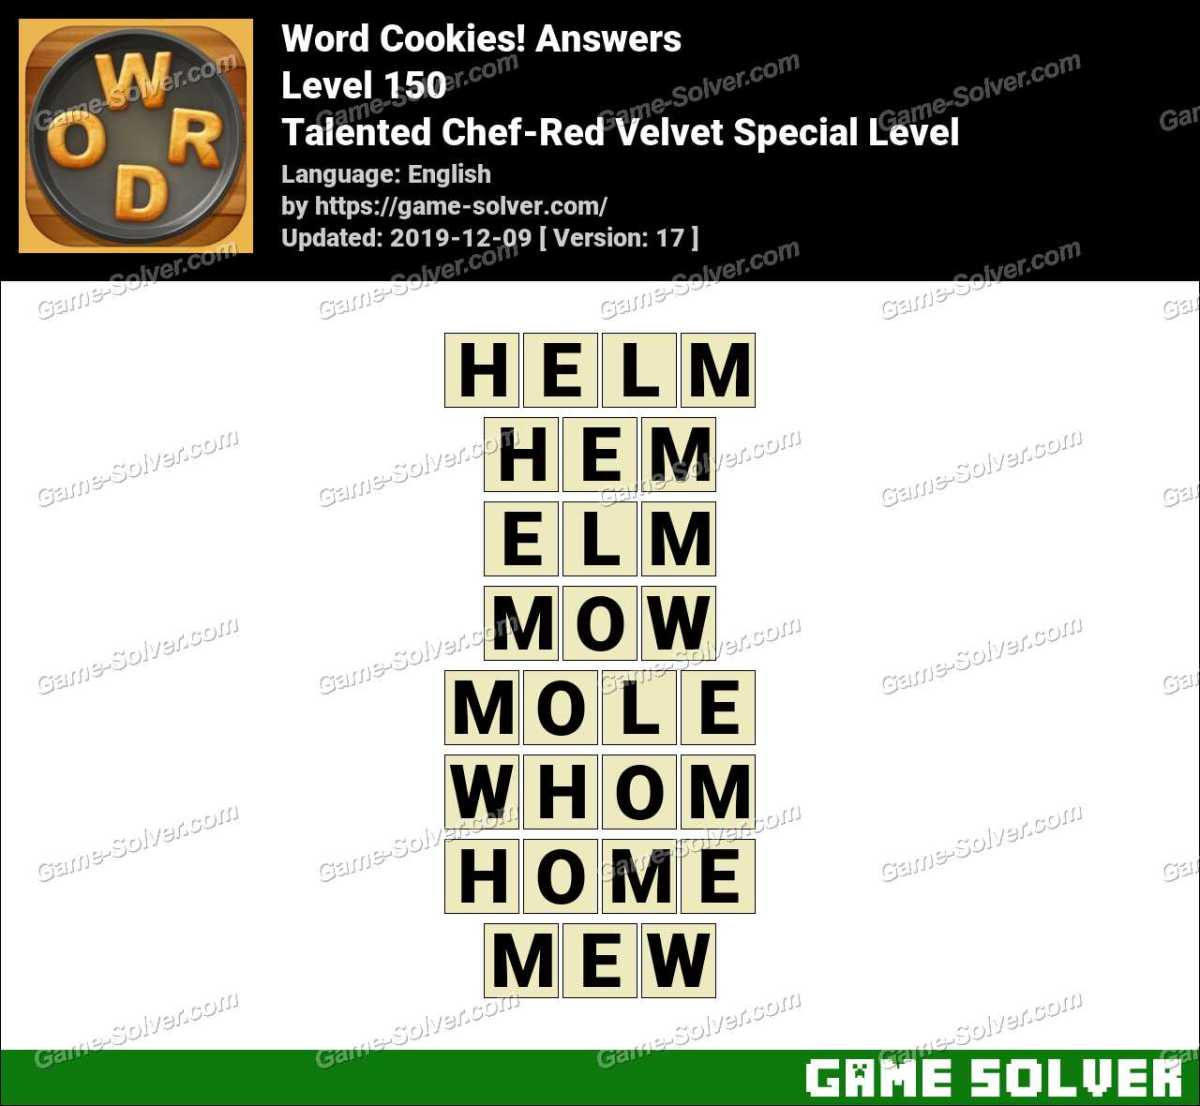 Word Cookies Talented Chef-Red Velvet Special Level Answers